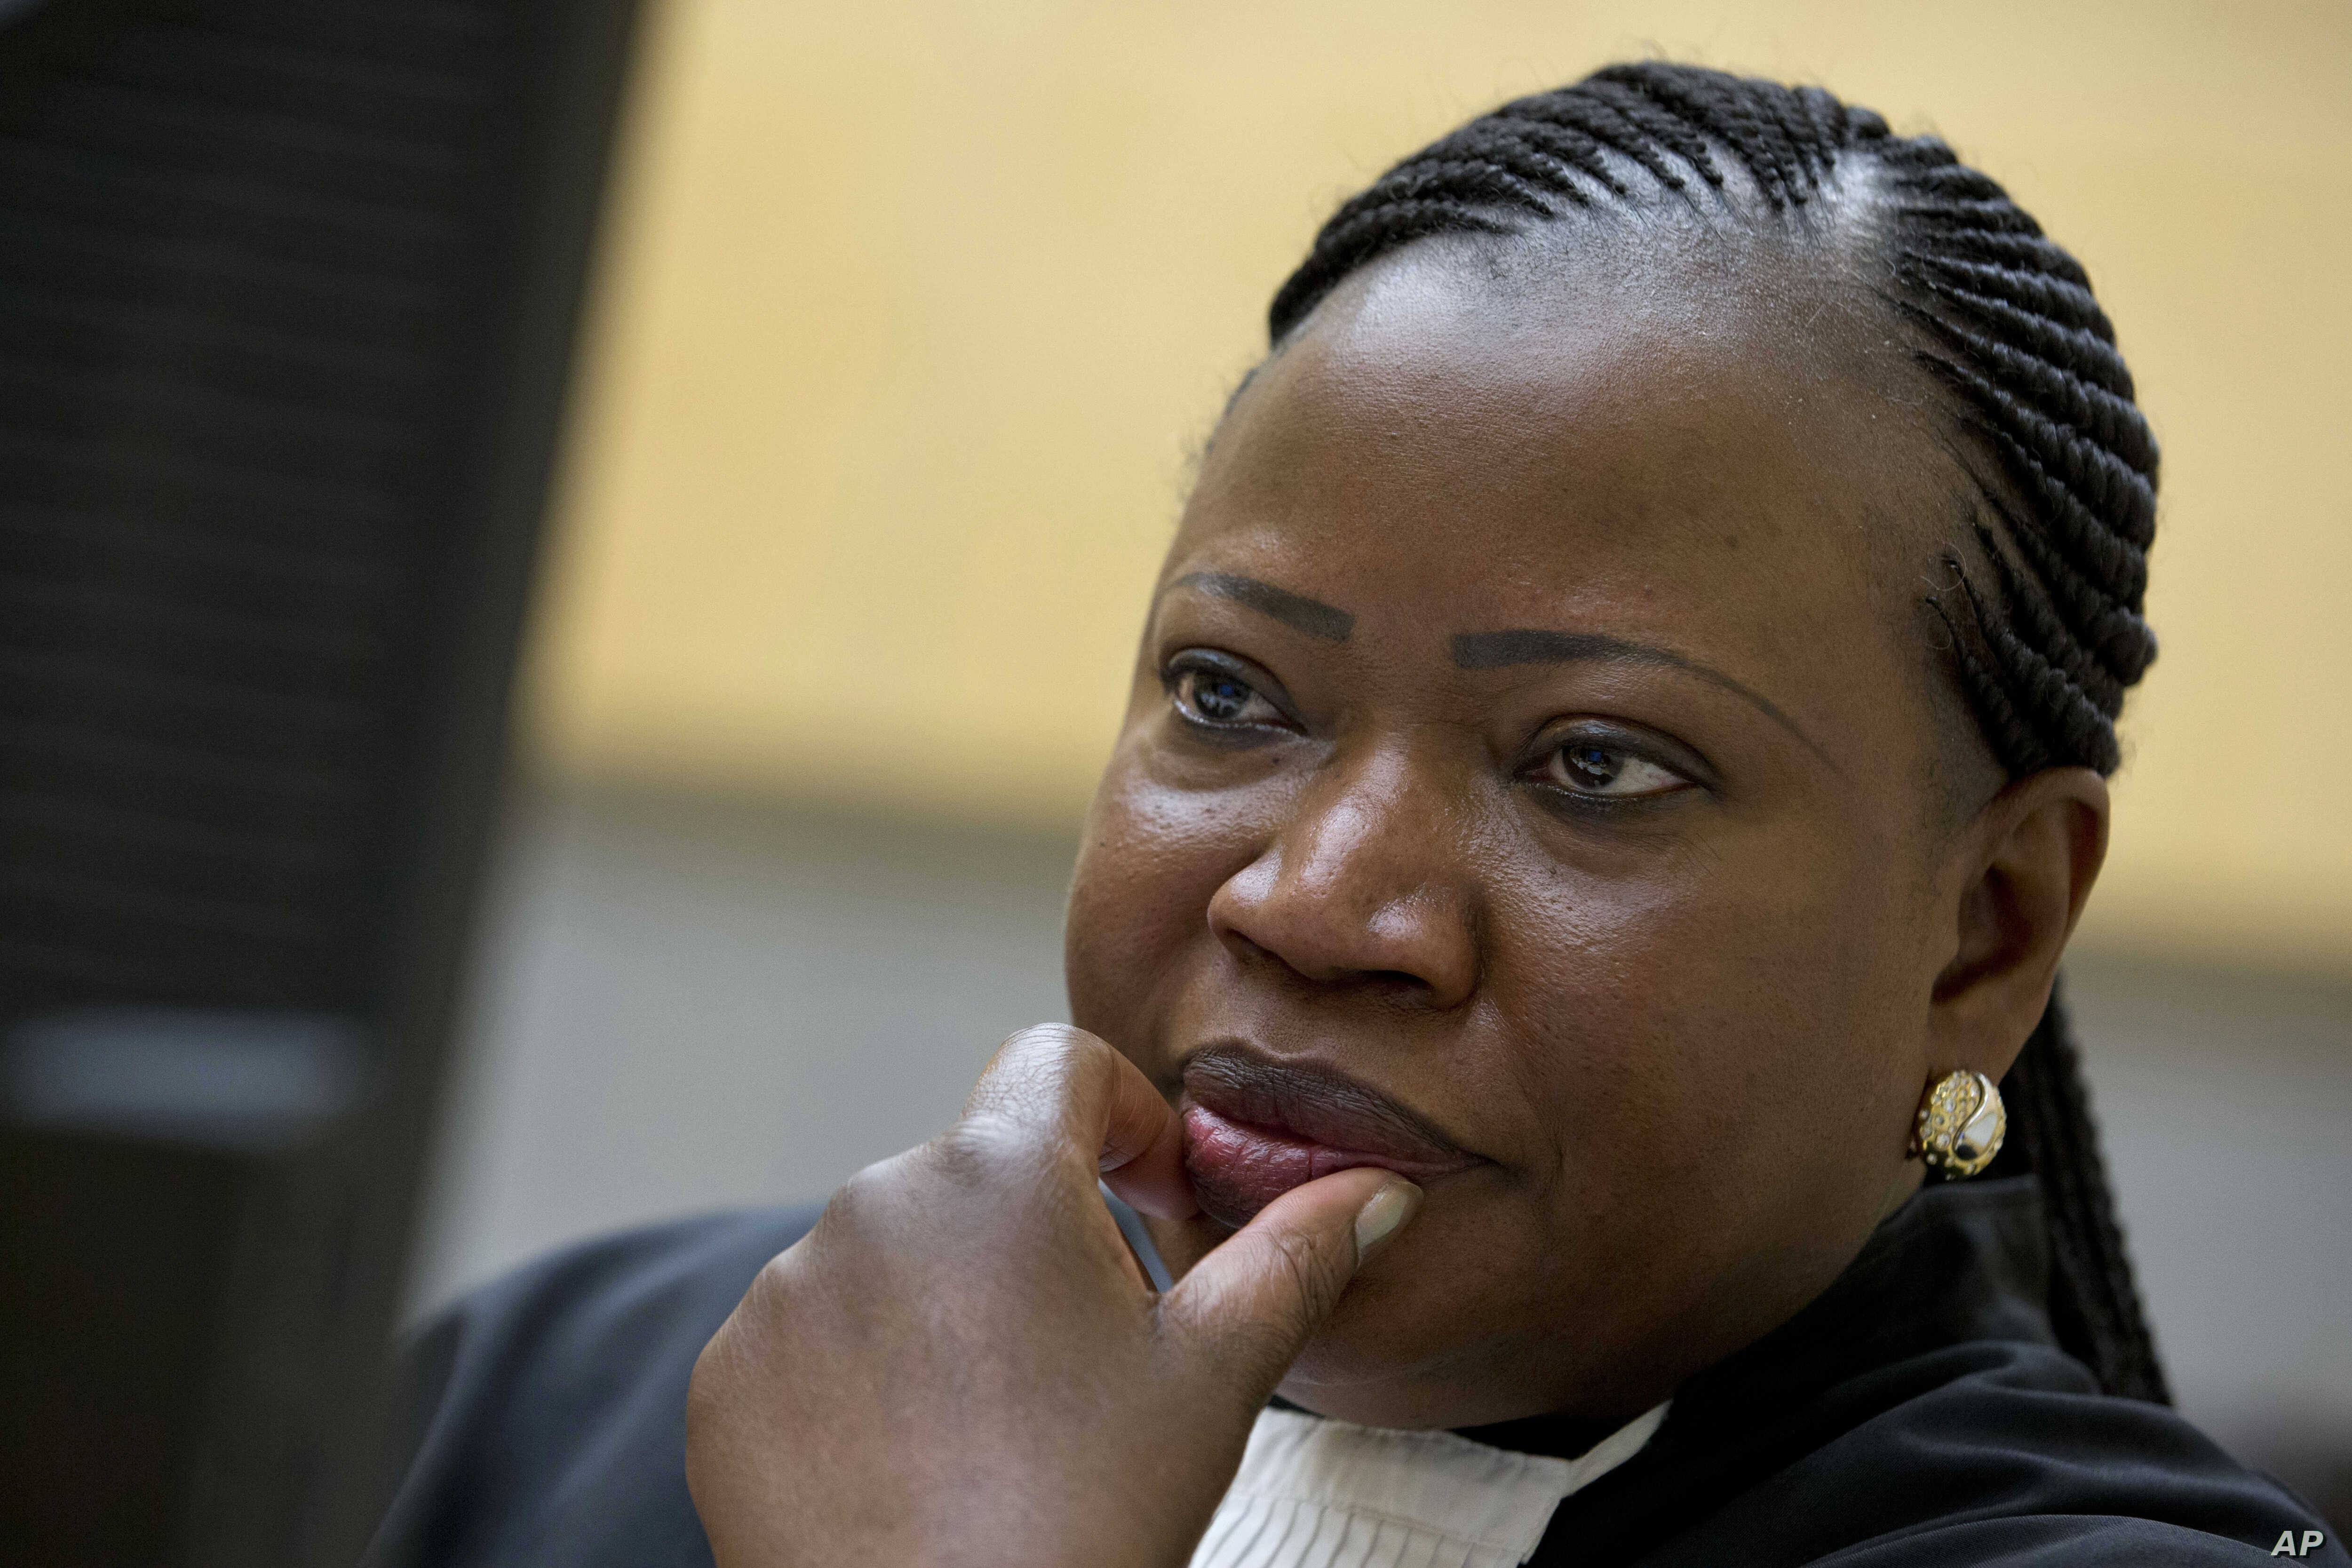 FILE - The ICC prosecutors office, headed by Fatou Bensouda, above, says it will decide soon whether to pursue a full investigation of possible war crimes committed by U.S. forces in Afghanistan in 2003 and 2004,